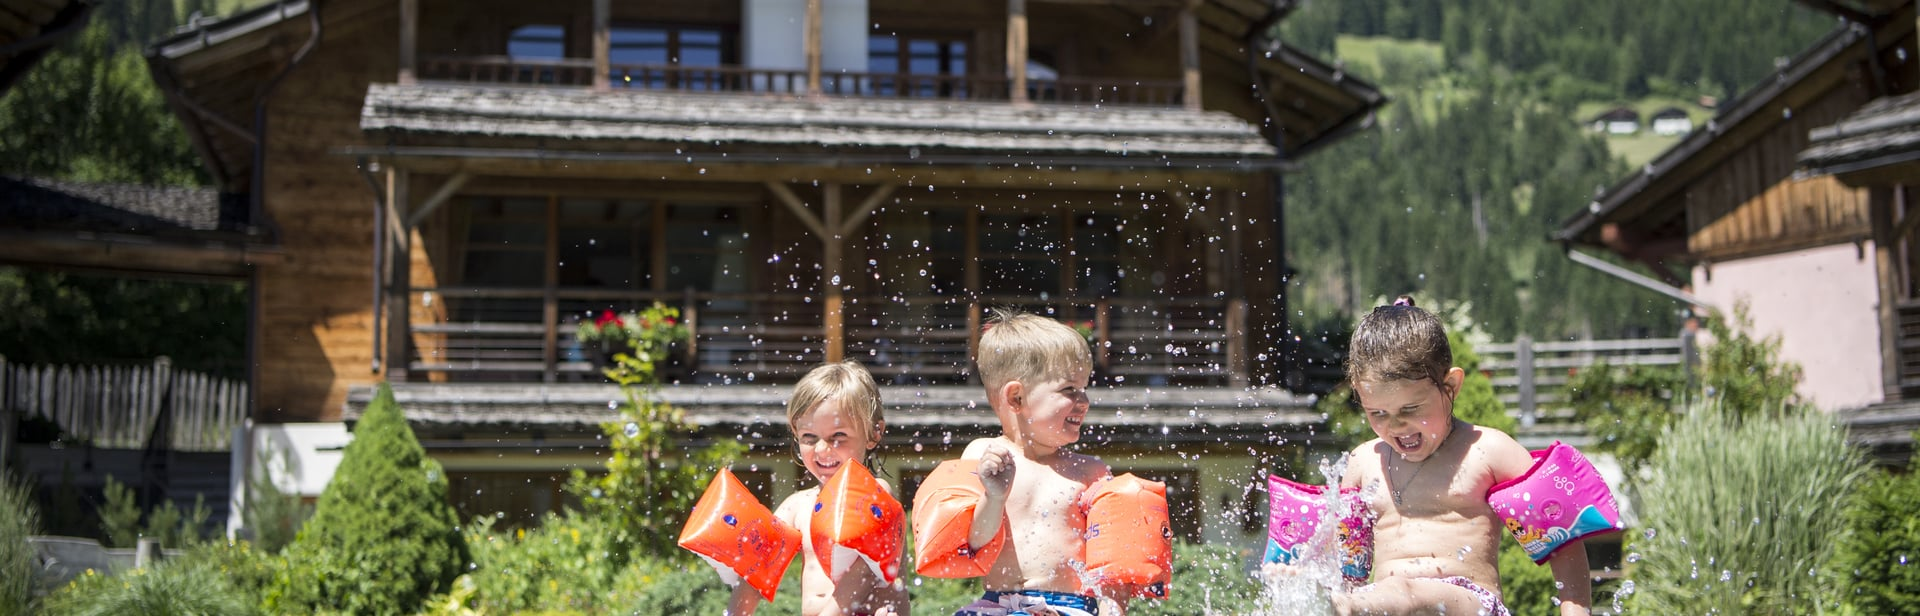 The Familienhotels Südtirol as a holiday gem